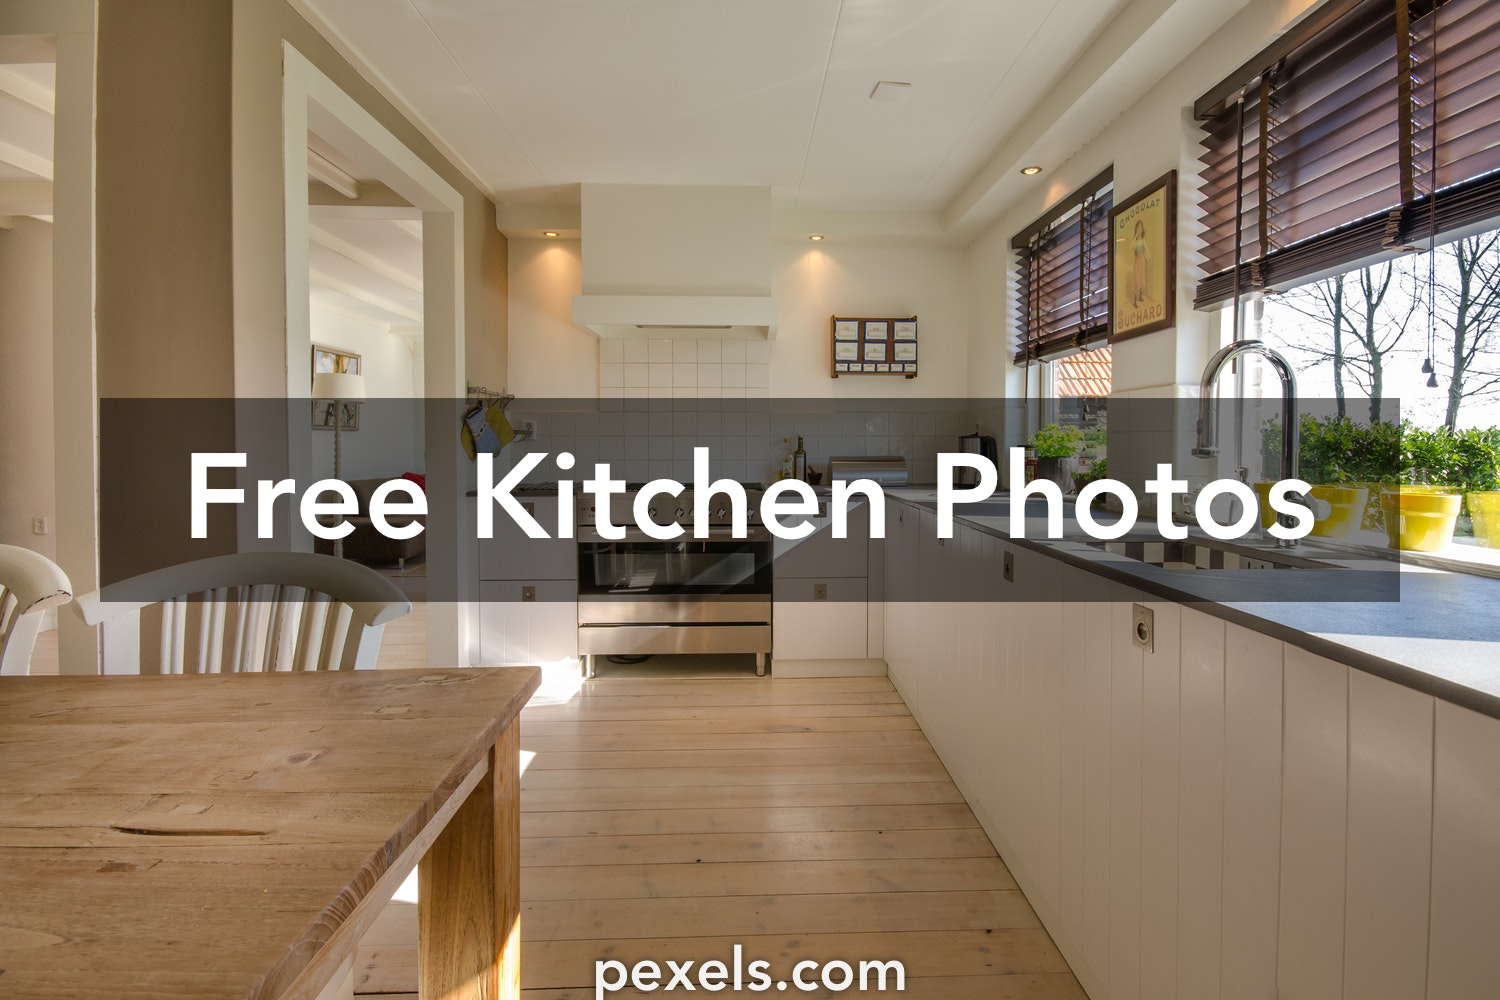 Kitchen photos pexels free stock photos - App to change color of kitchen cabinets ...